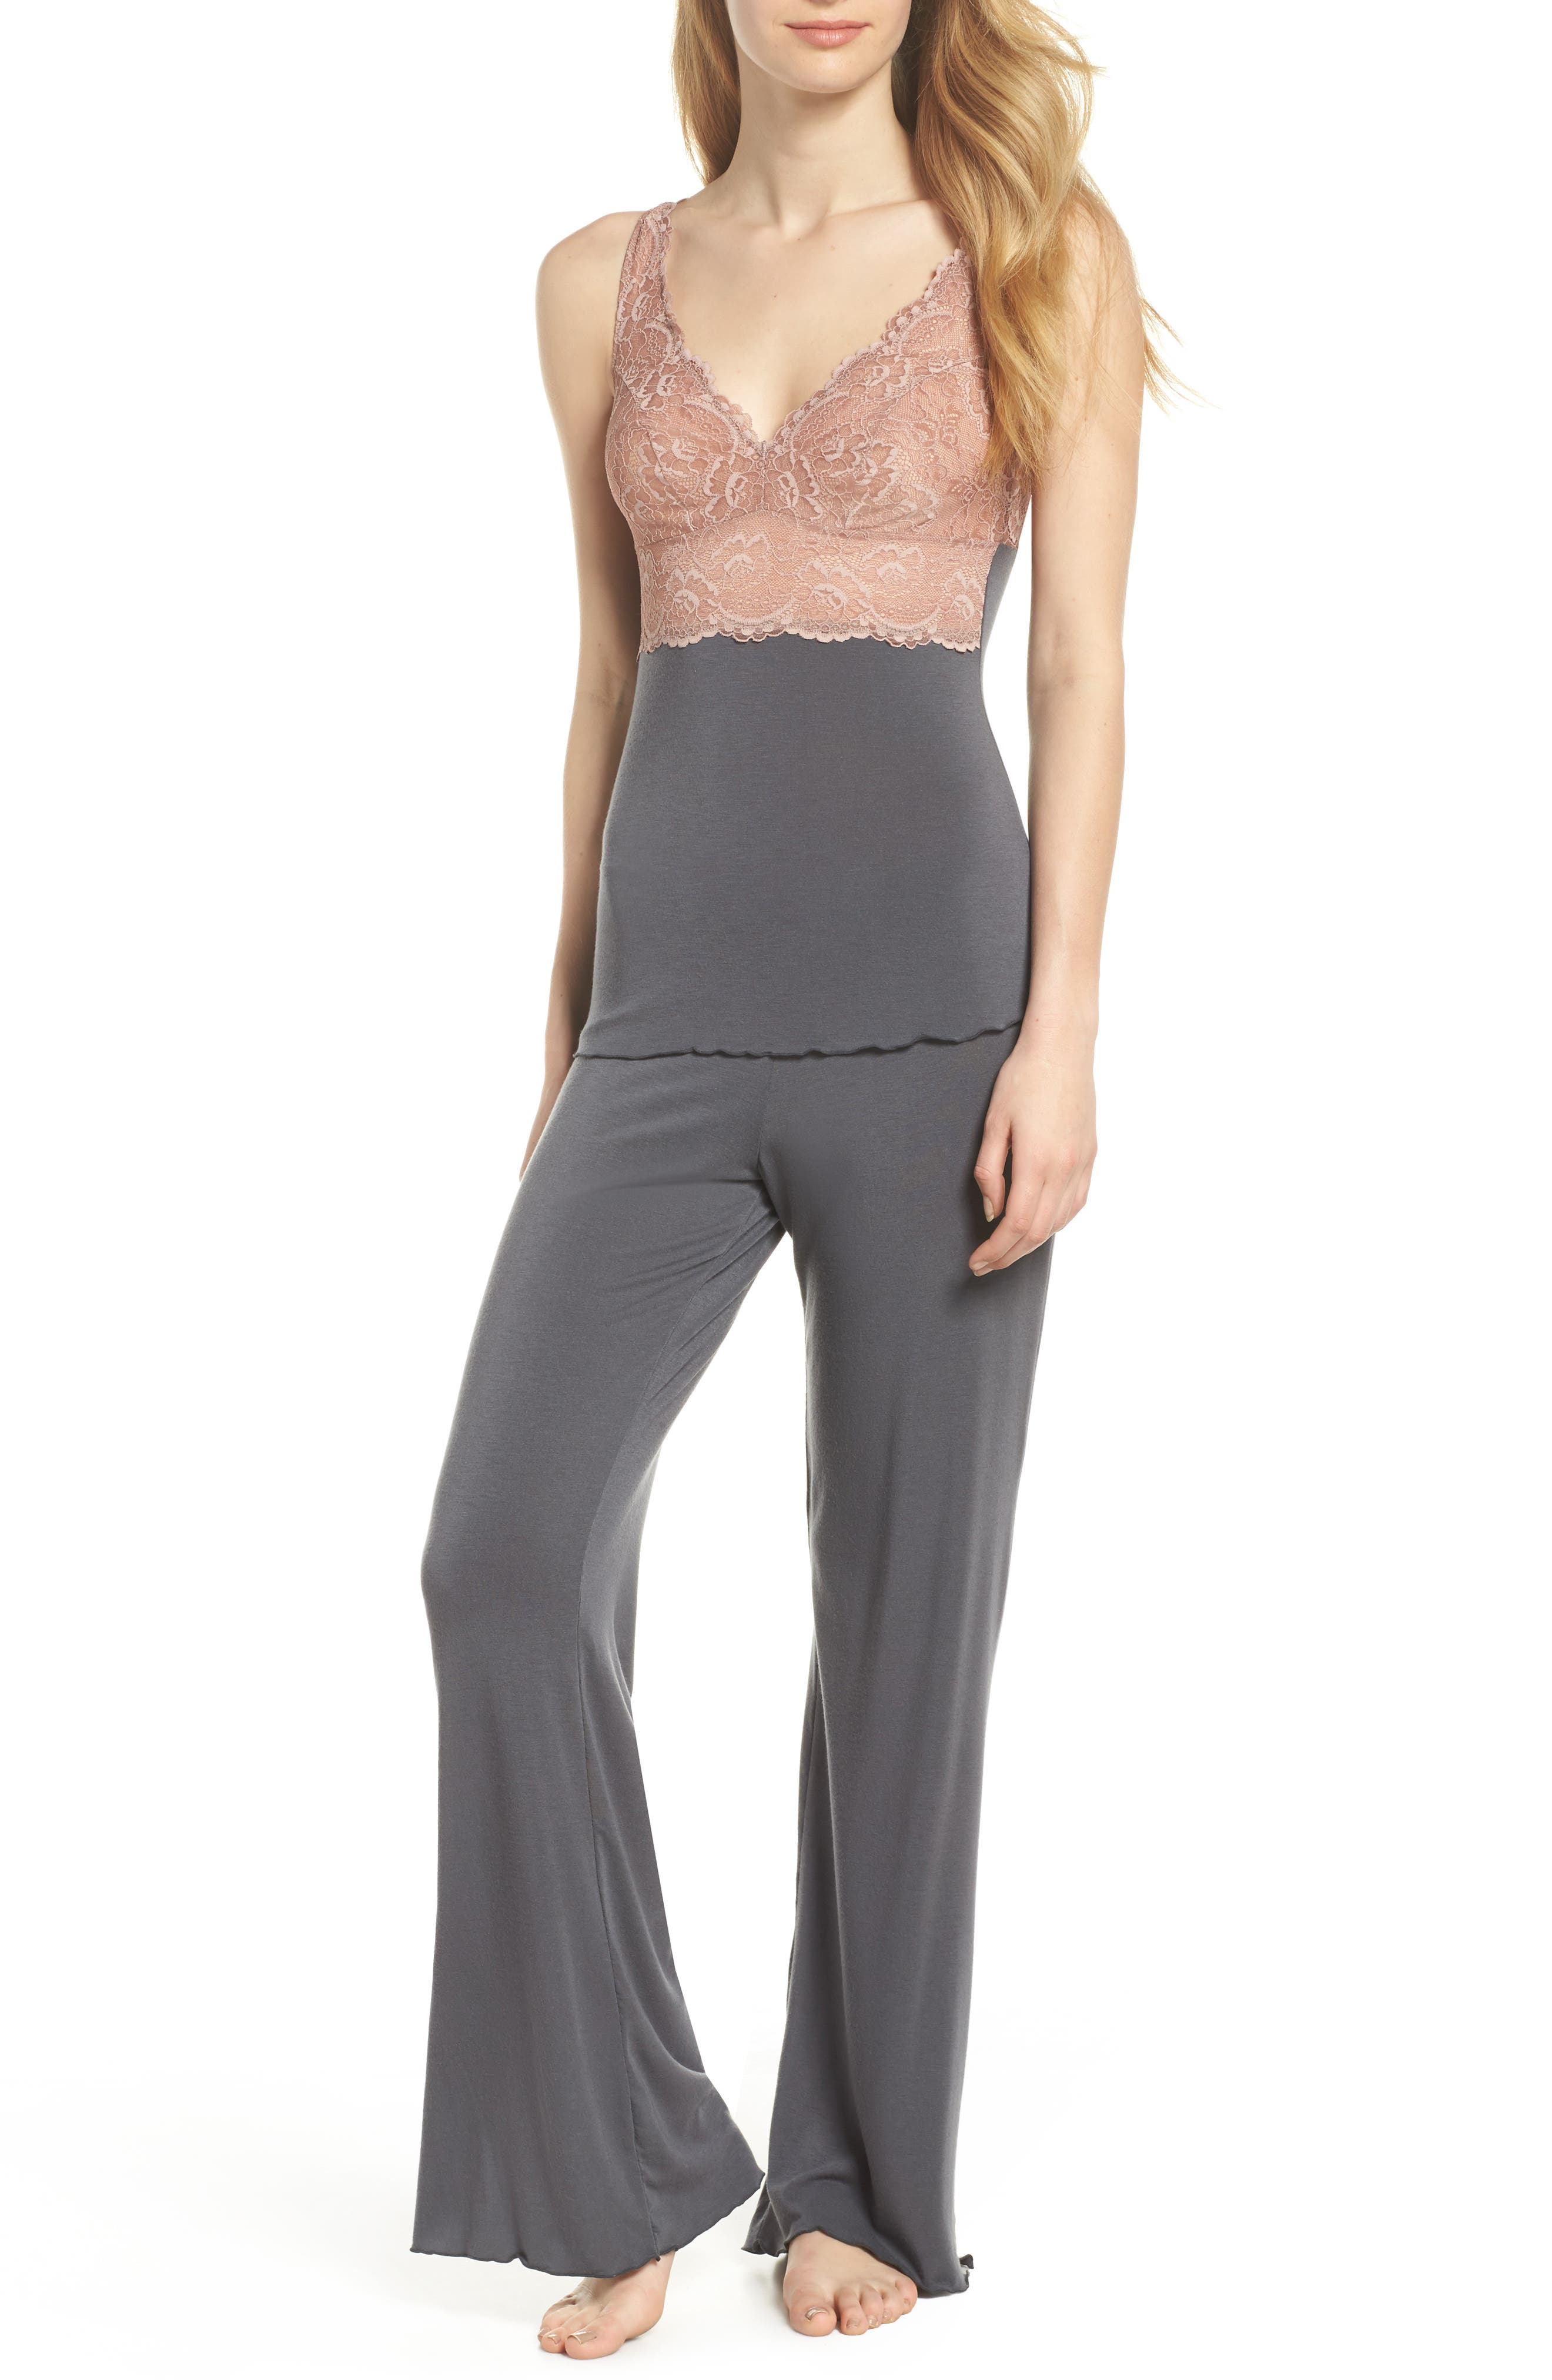 Lace Trim Pants,                             Alternate thumbnail 5, color,                             Slate With Java Lace